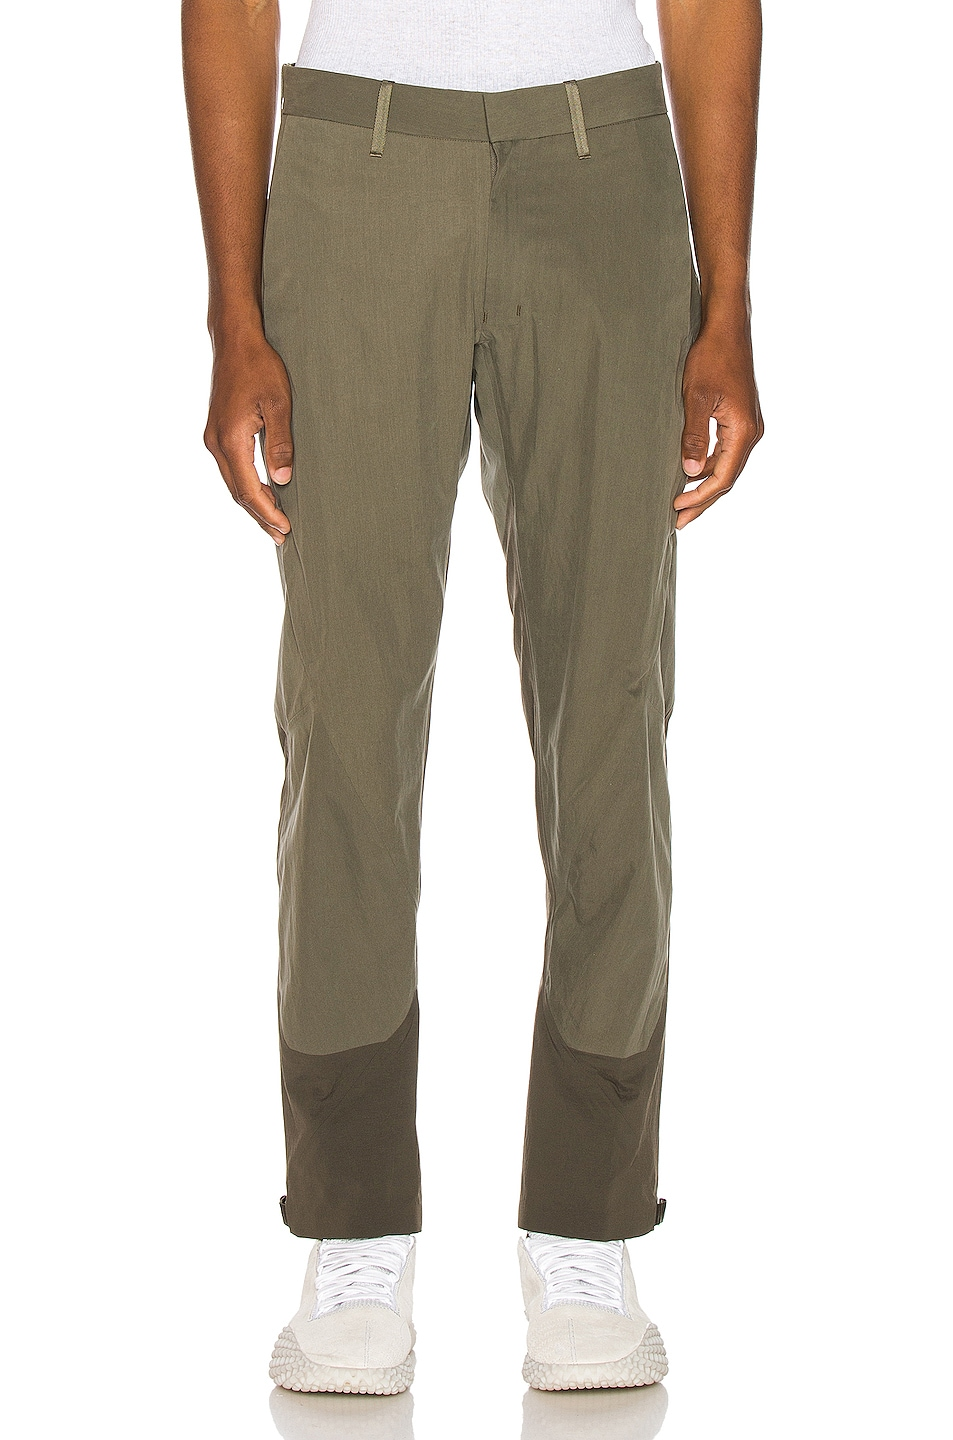 Image 1 of Veilance Apparat Pant in Loden